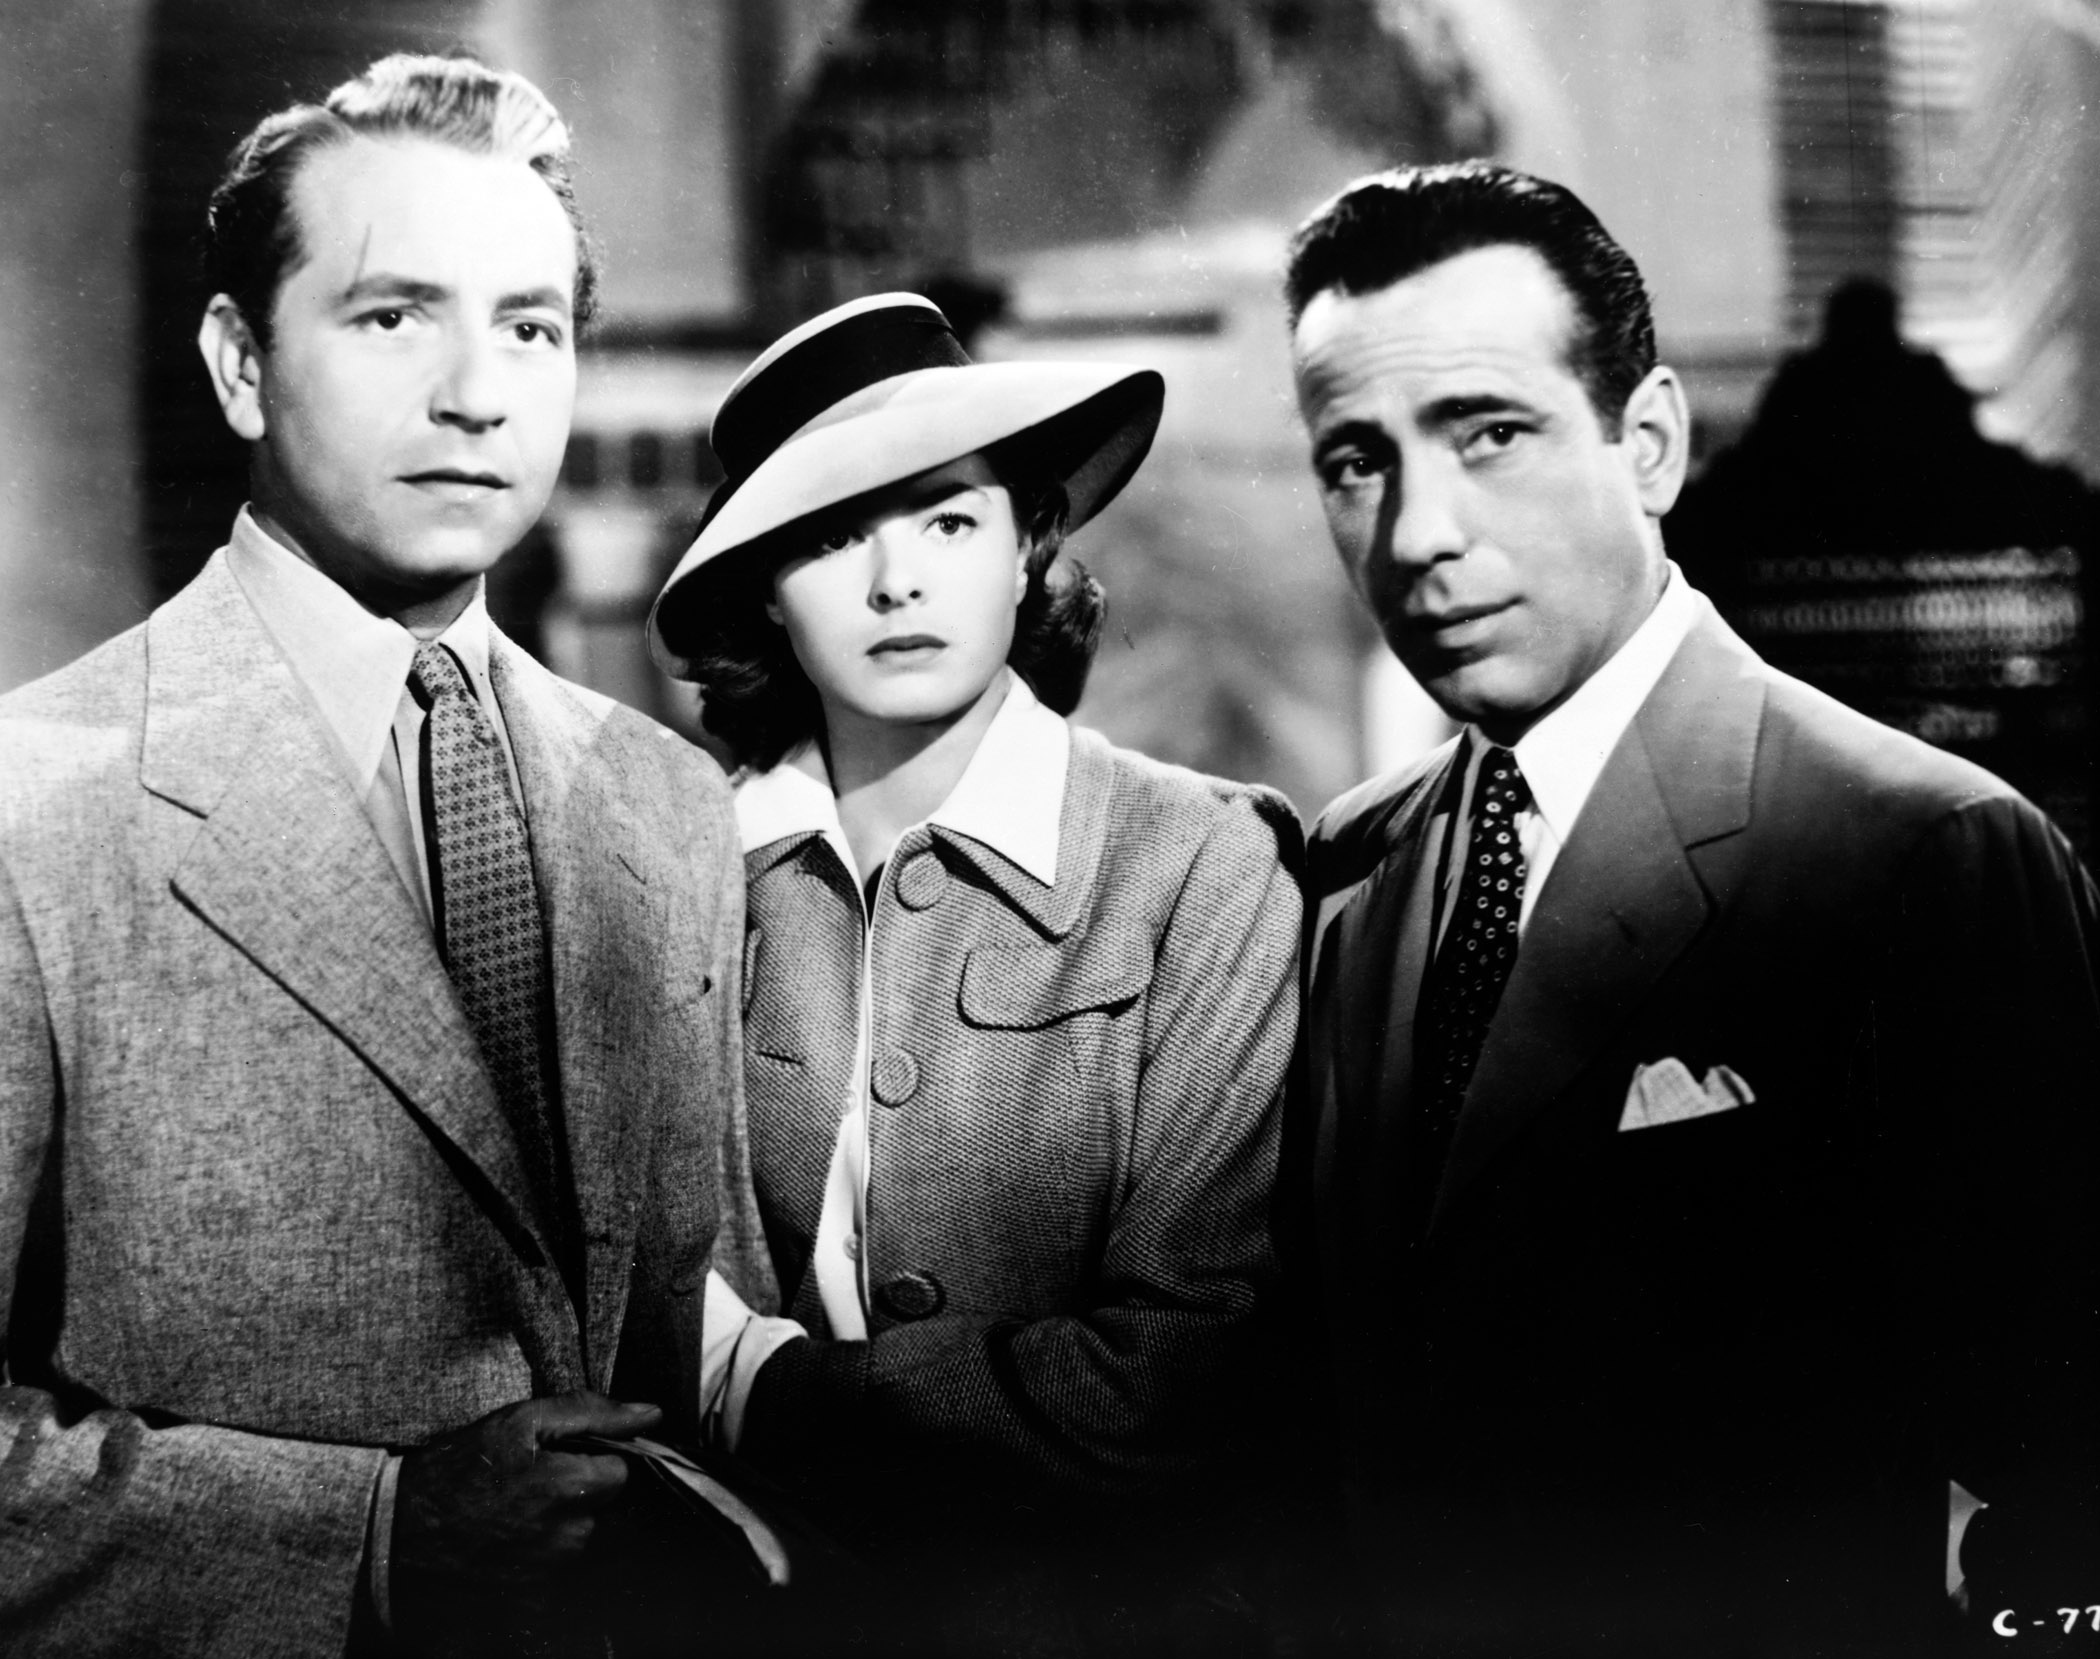 an analysis of the movie casablanca and the character of rick blaine Movies and tv shows are certified fresh with a steady tomatometer of 75% or higher after a set amount of reviews (80 for wide-release movies, 40 rick blaine: last night we said a rick blaine: i came to casablanca for the waters capt louis renault: waters we're in a desert.